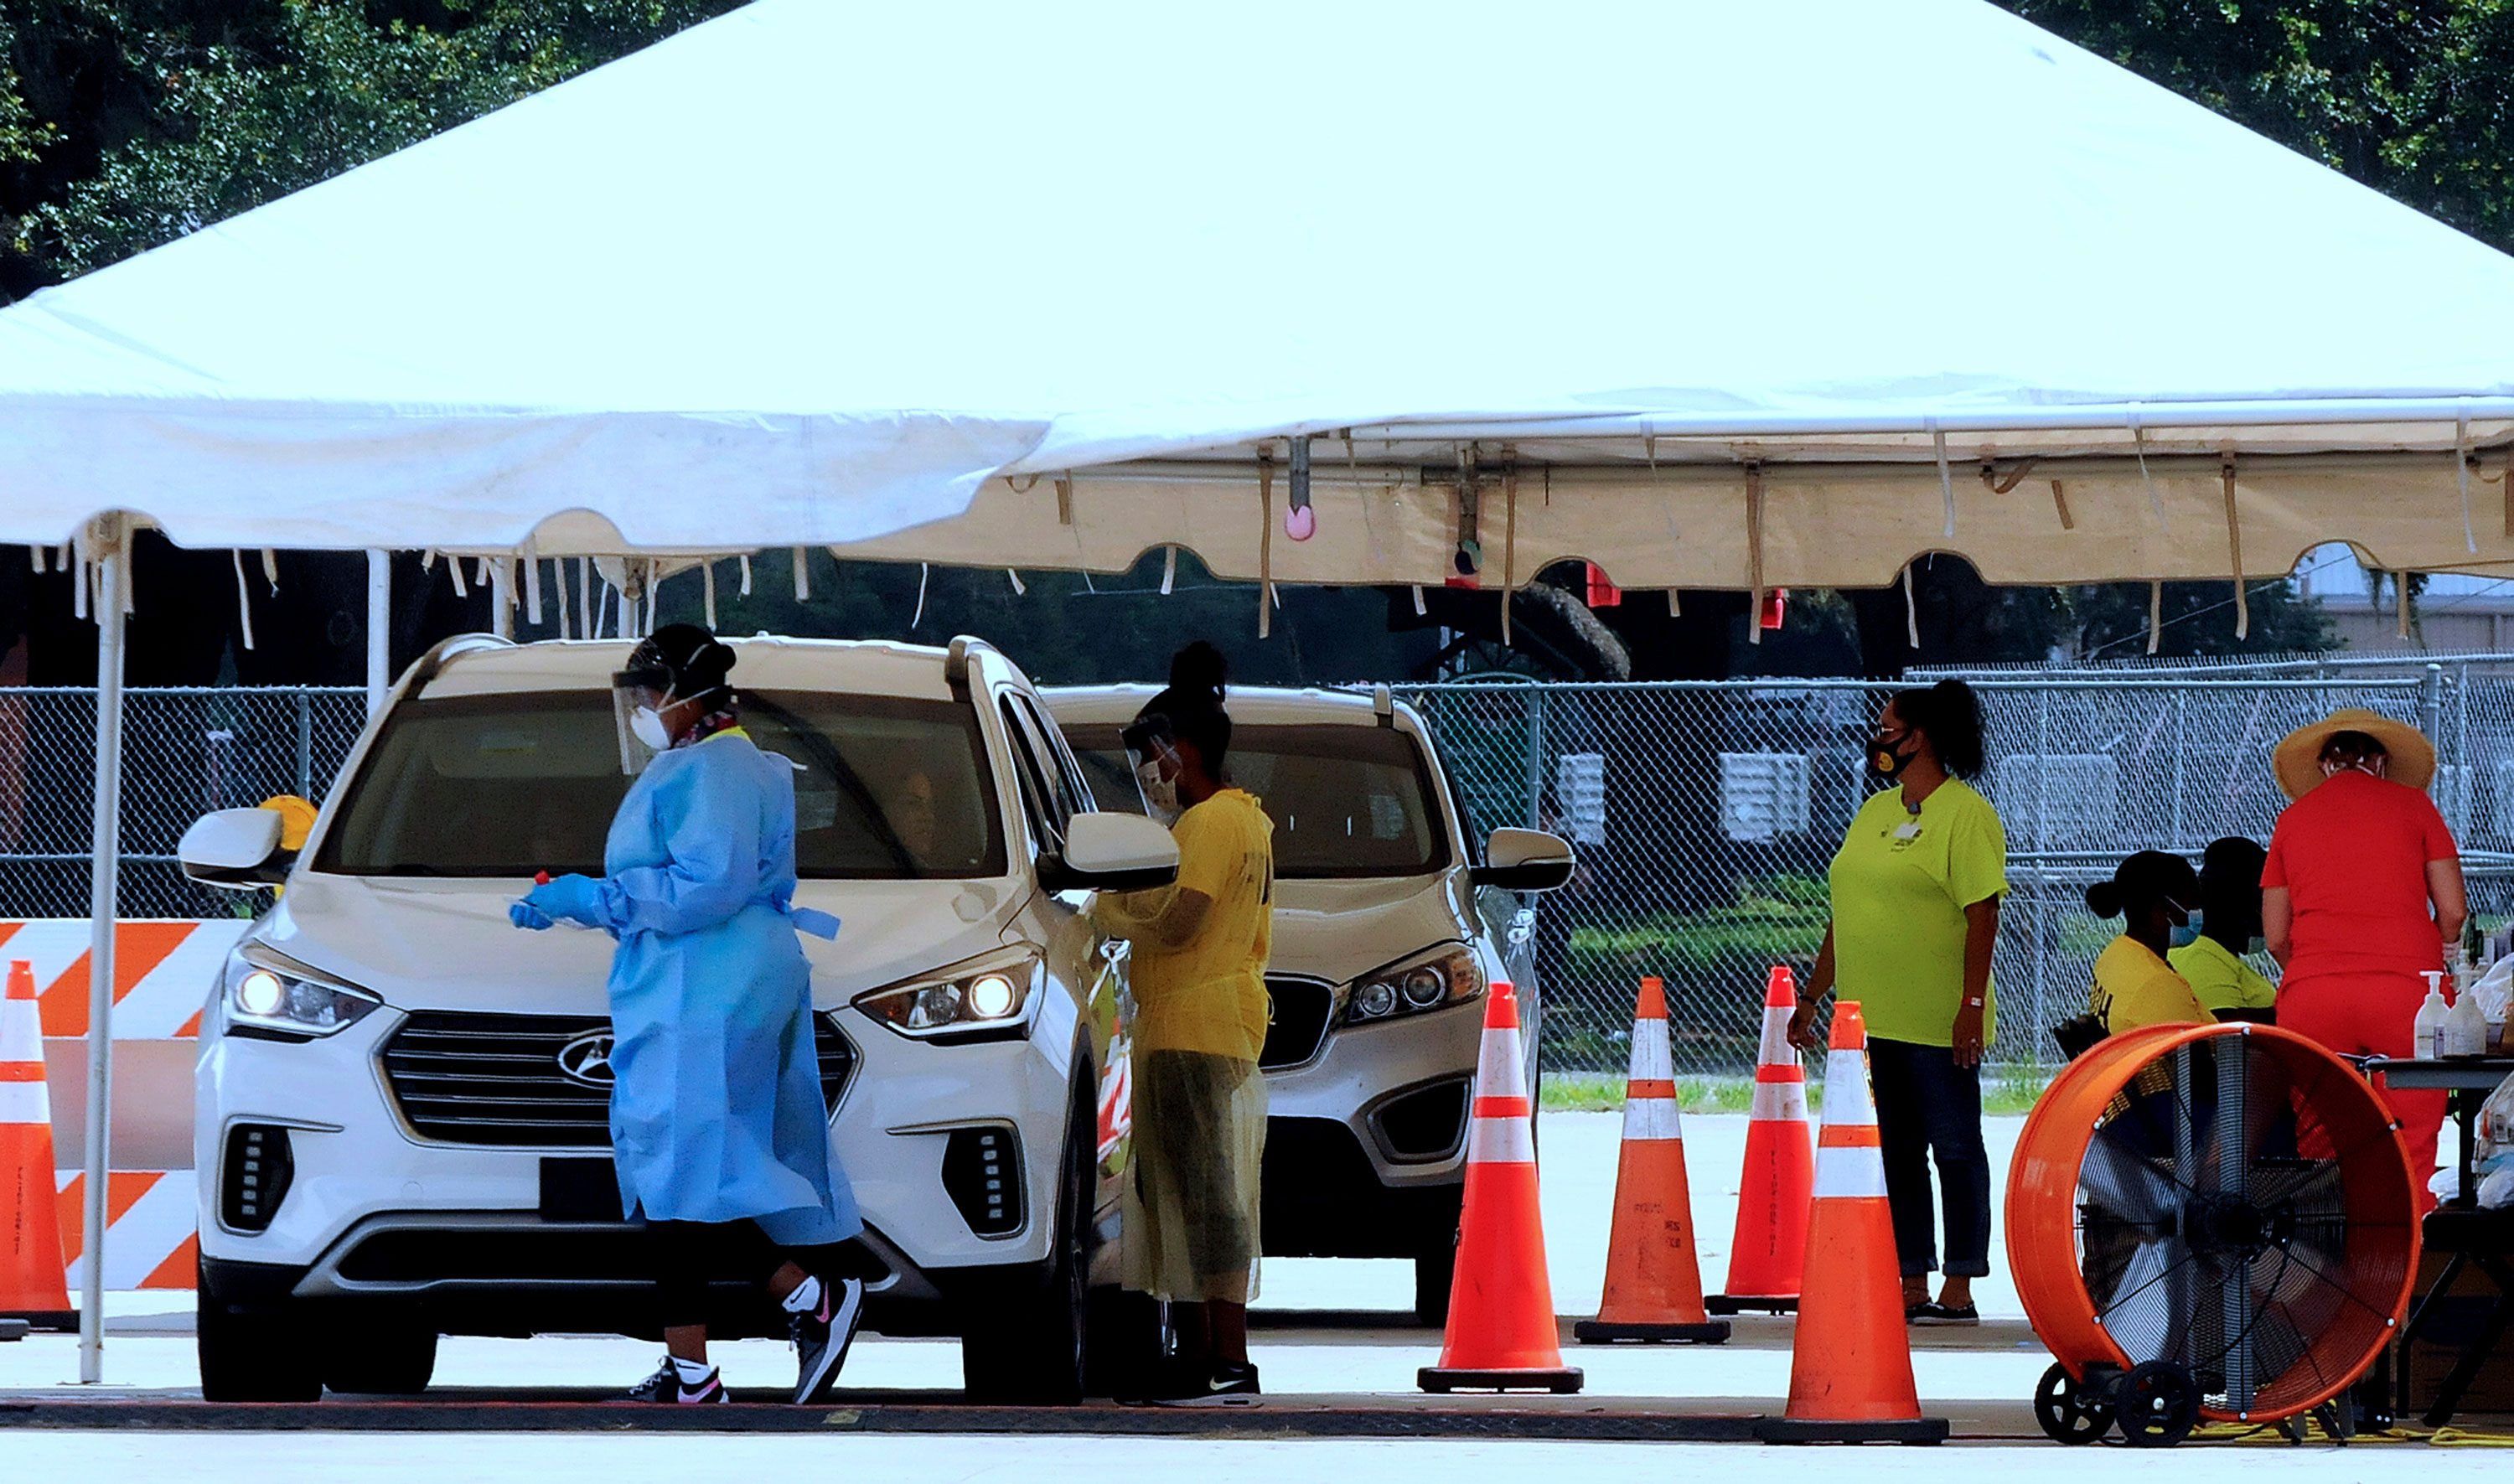 People are tested for Covid-19 at a drive-through testing site operated by the Florida Department of Health in Kissimmee, Florida, on July 11.